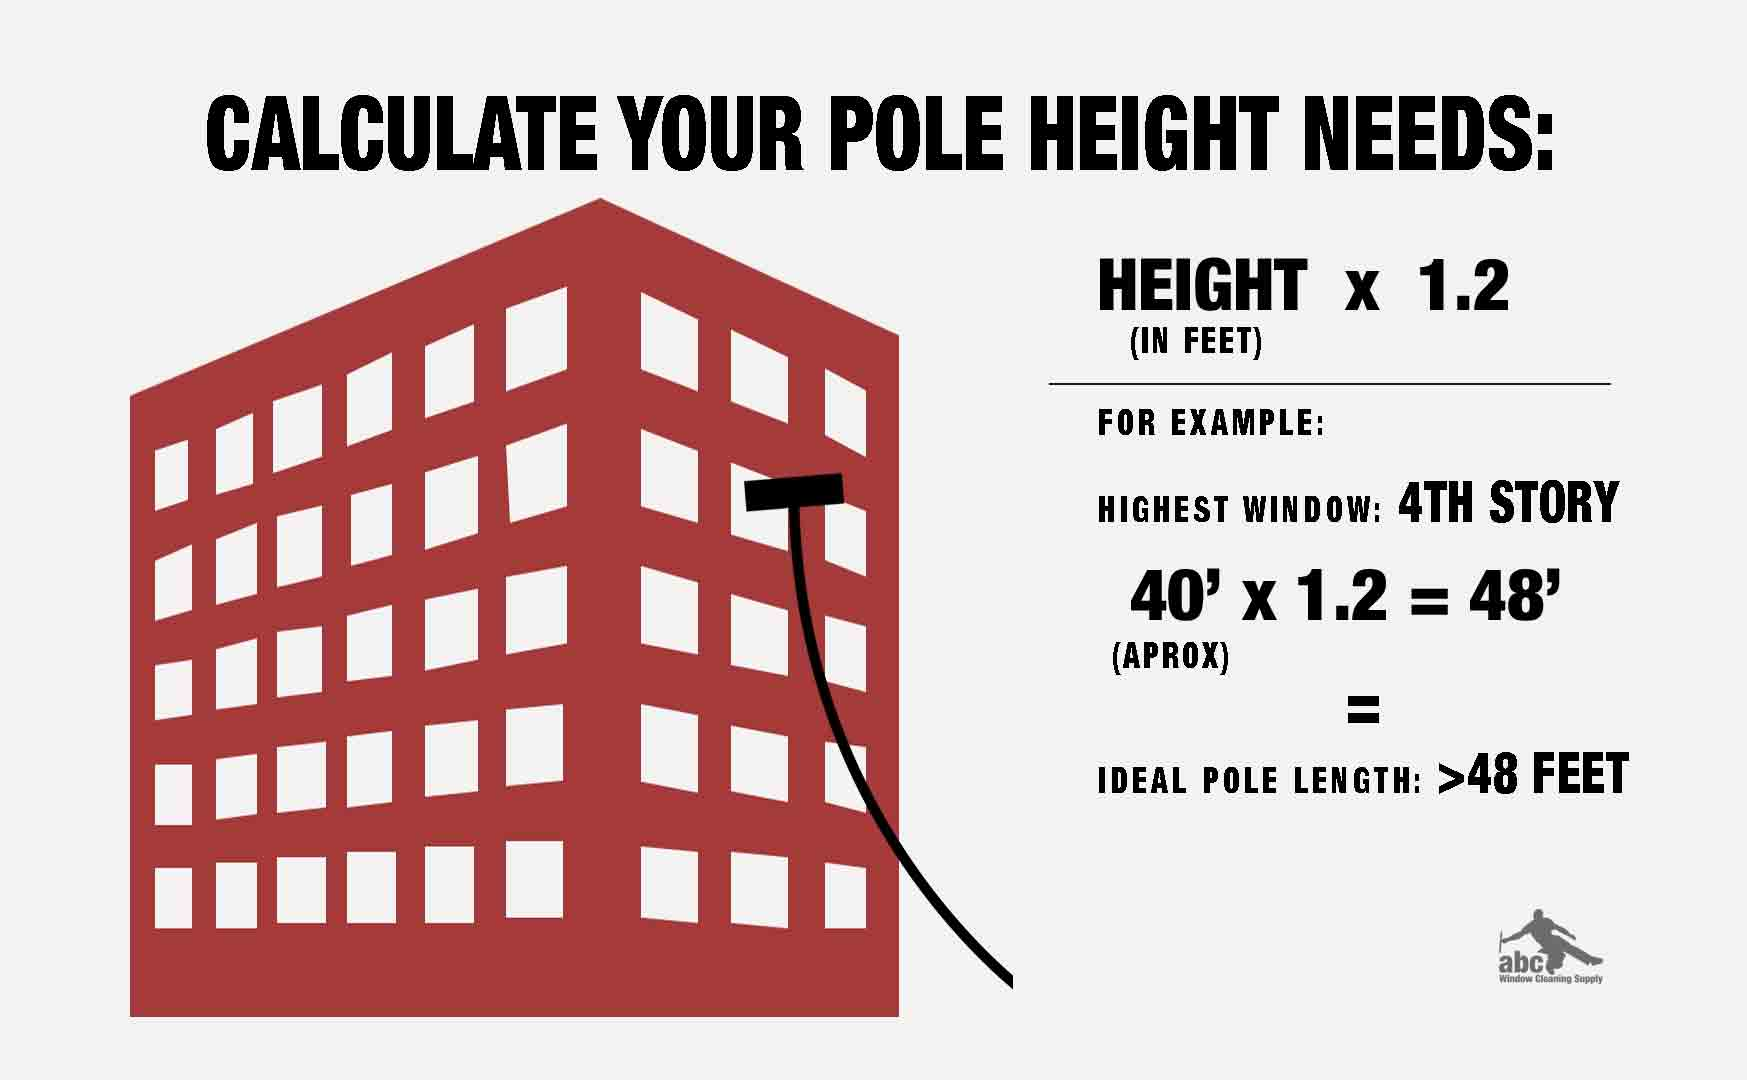 Calculating Your Pole Height Needs